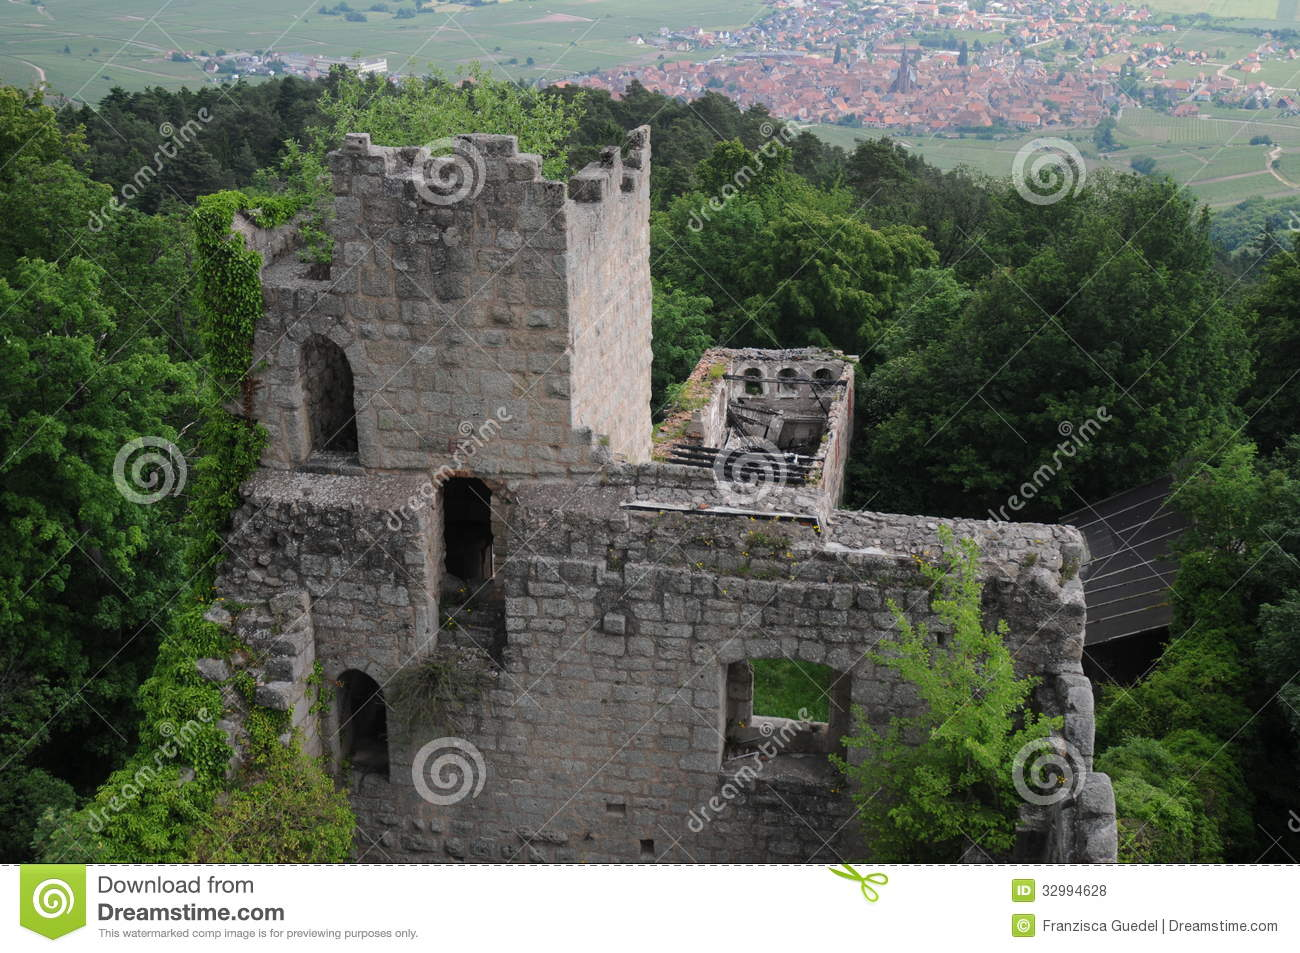 Bernstein Castle Locally Known As Chteau Du Is A Ruined Above The Village Of Dambach La Ville In France One Oldest